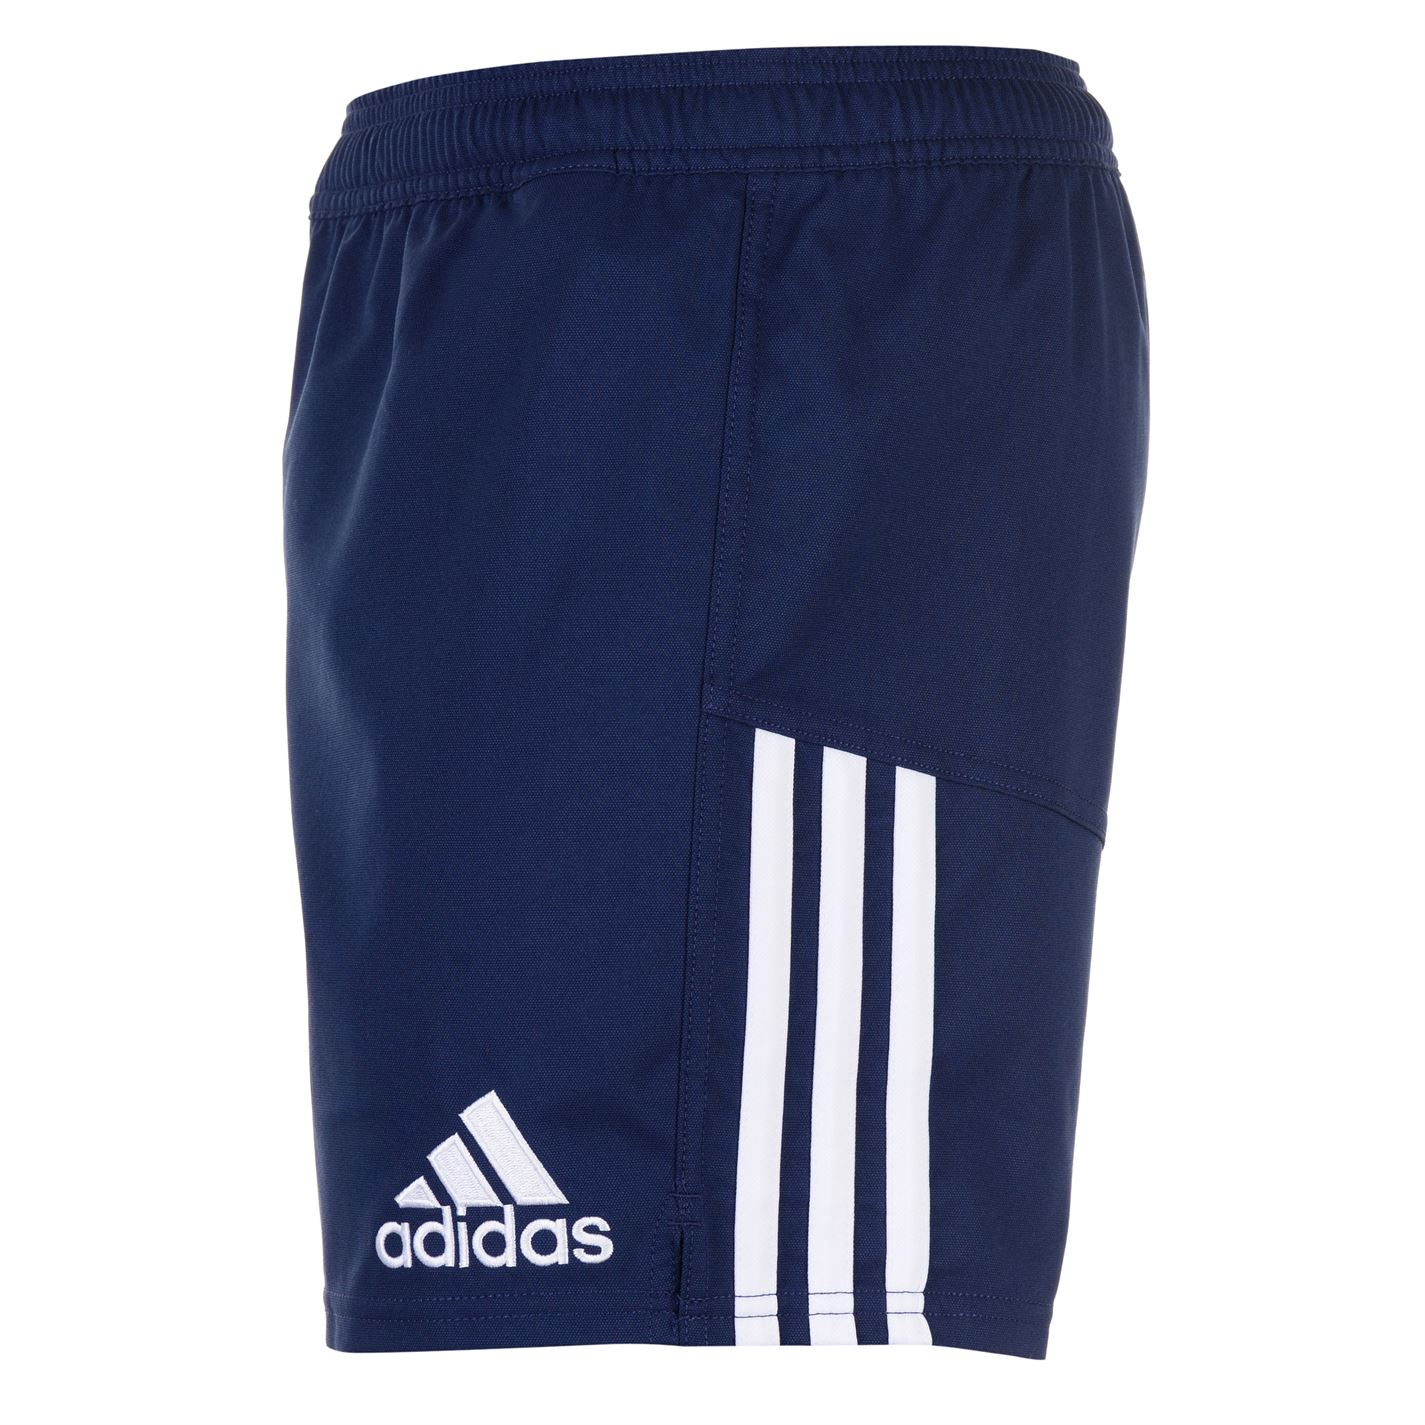 a7db591d3 adidas Mens 3S Training Shorts Rugby Pants Trousers Bottoms ...